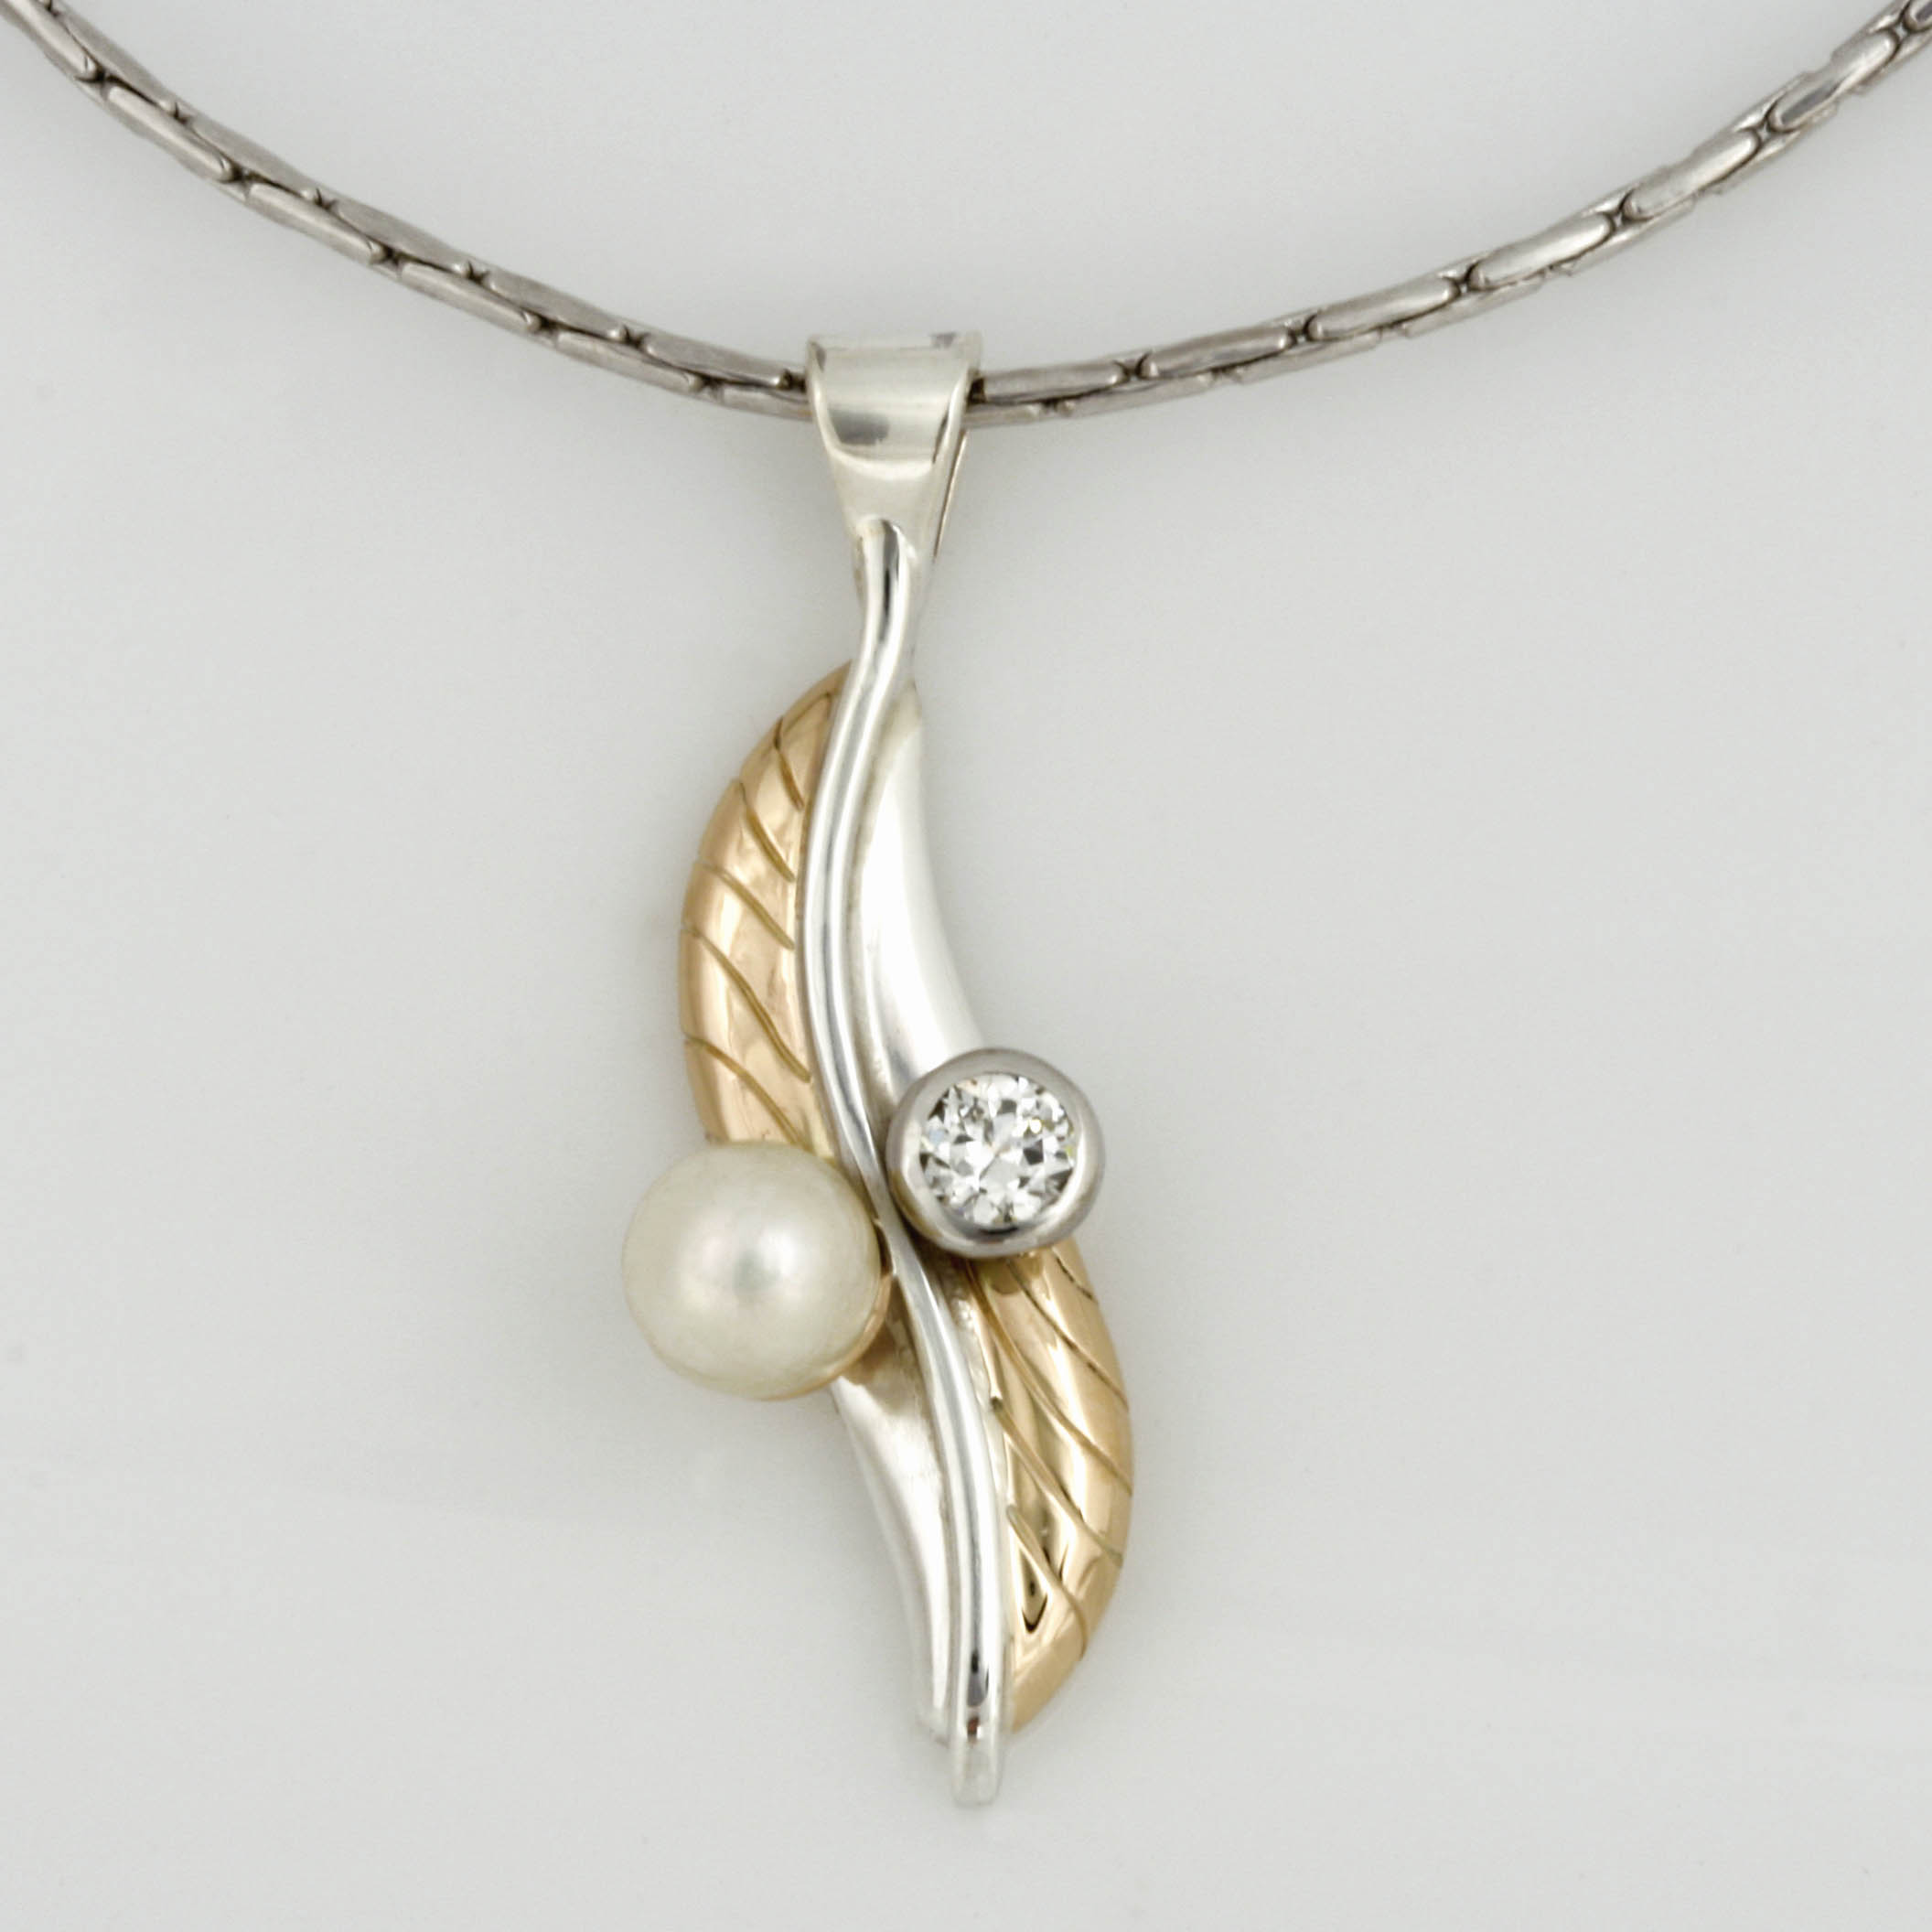 Handmade ladies 14ct yellow gold and sterling silver, pearl and diamond pendant